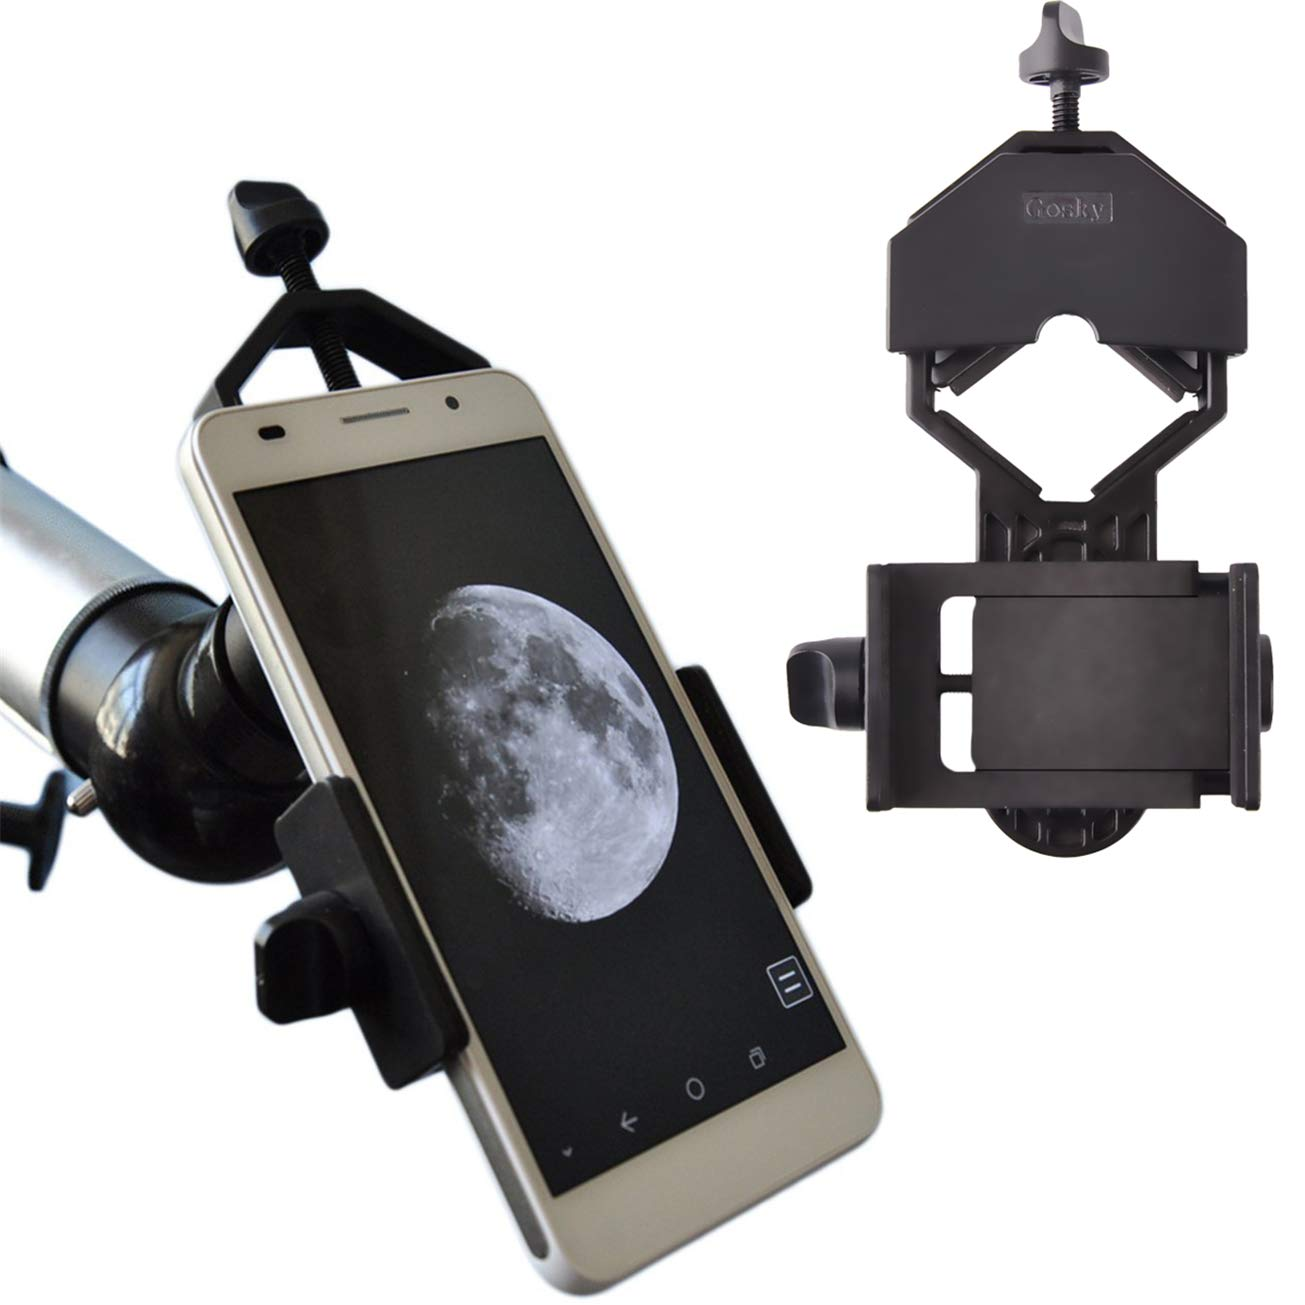 Gosky Camera Shutter Wire Control Smartphones Smartphones Adapter Mount Such as Universal Cell Phone Adapter Mount- Remove Vibration -Get Better Photos 4331908701